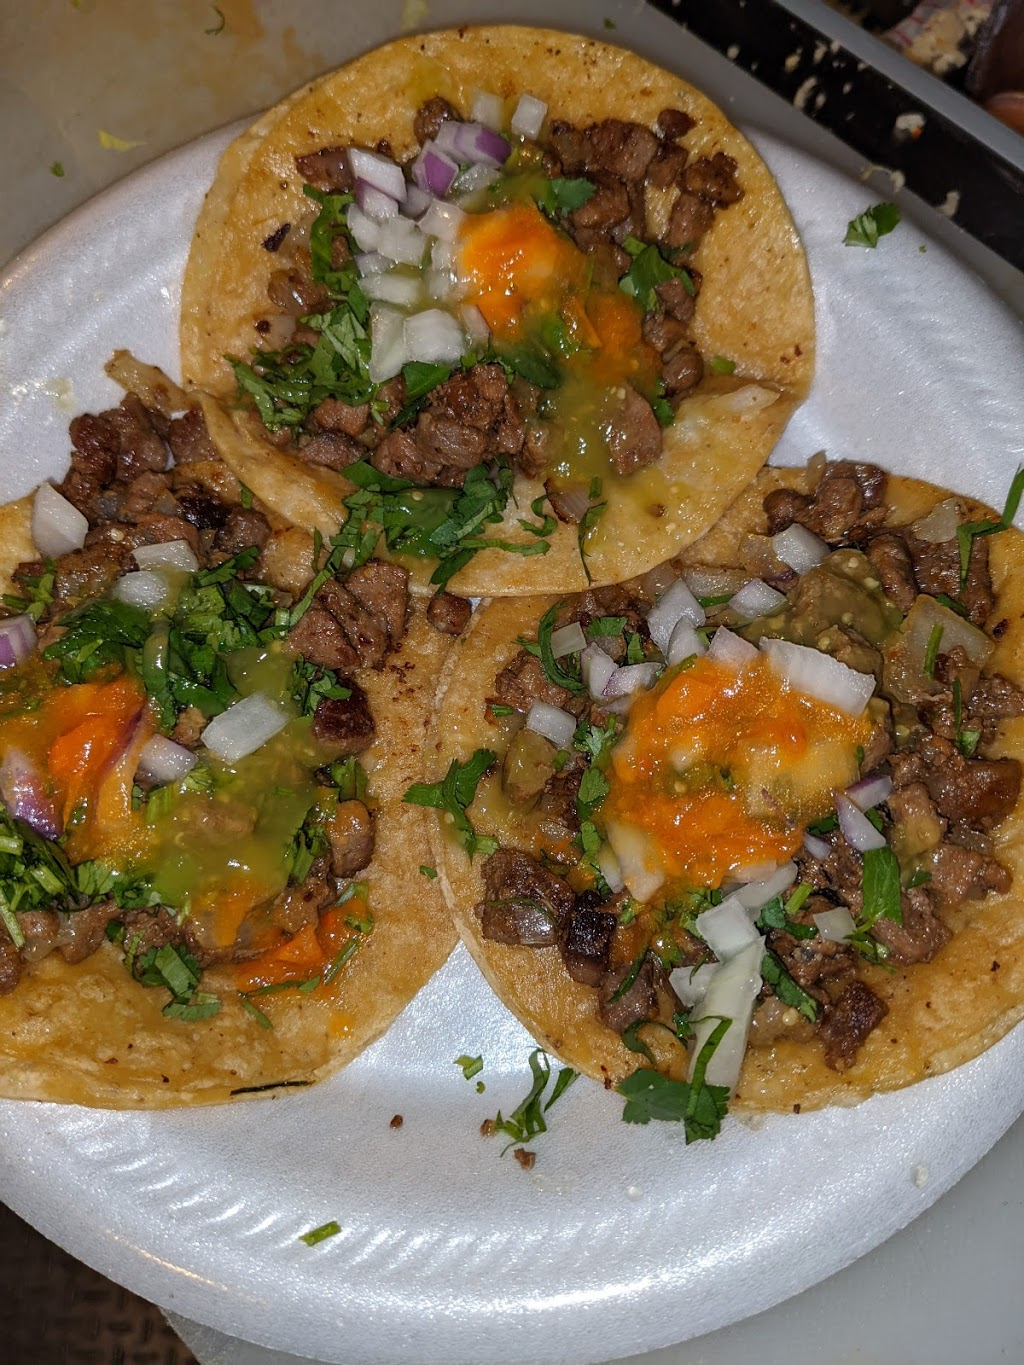 Panchitos Tacos Truck - restaurant  | Photo 5 of 10 | Address: 4900 W Gladys Ave, Chicago, IL 60644, USA | Phone: (773) 574-5964